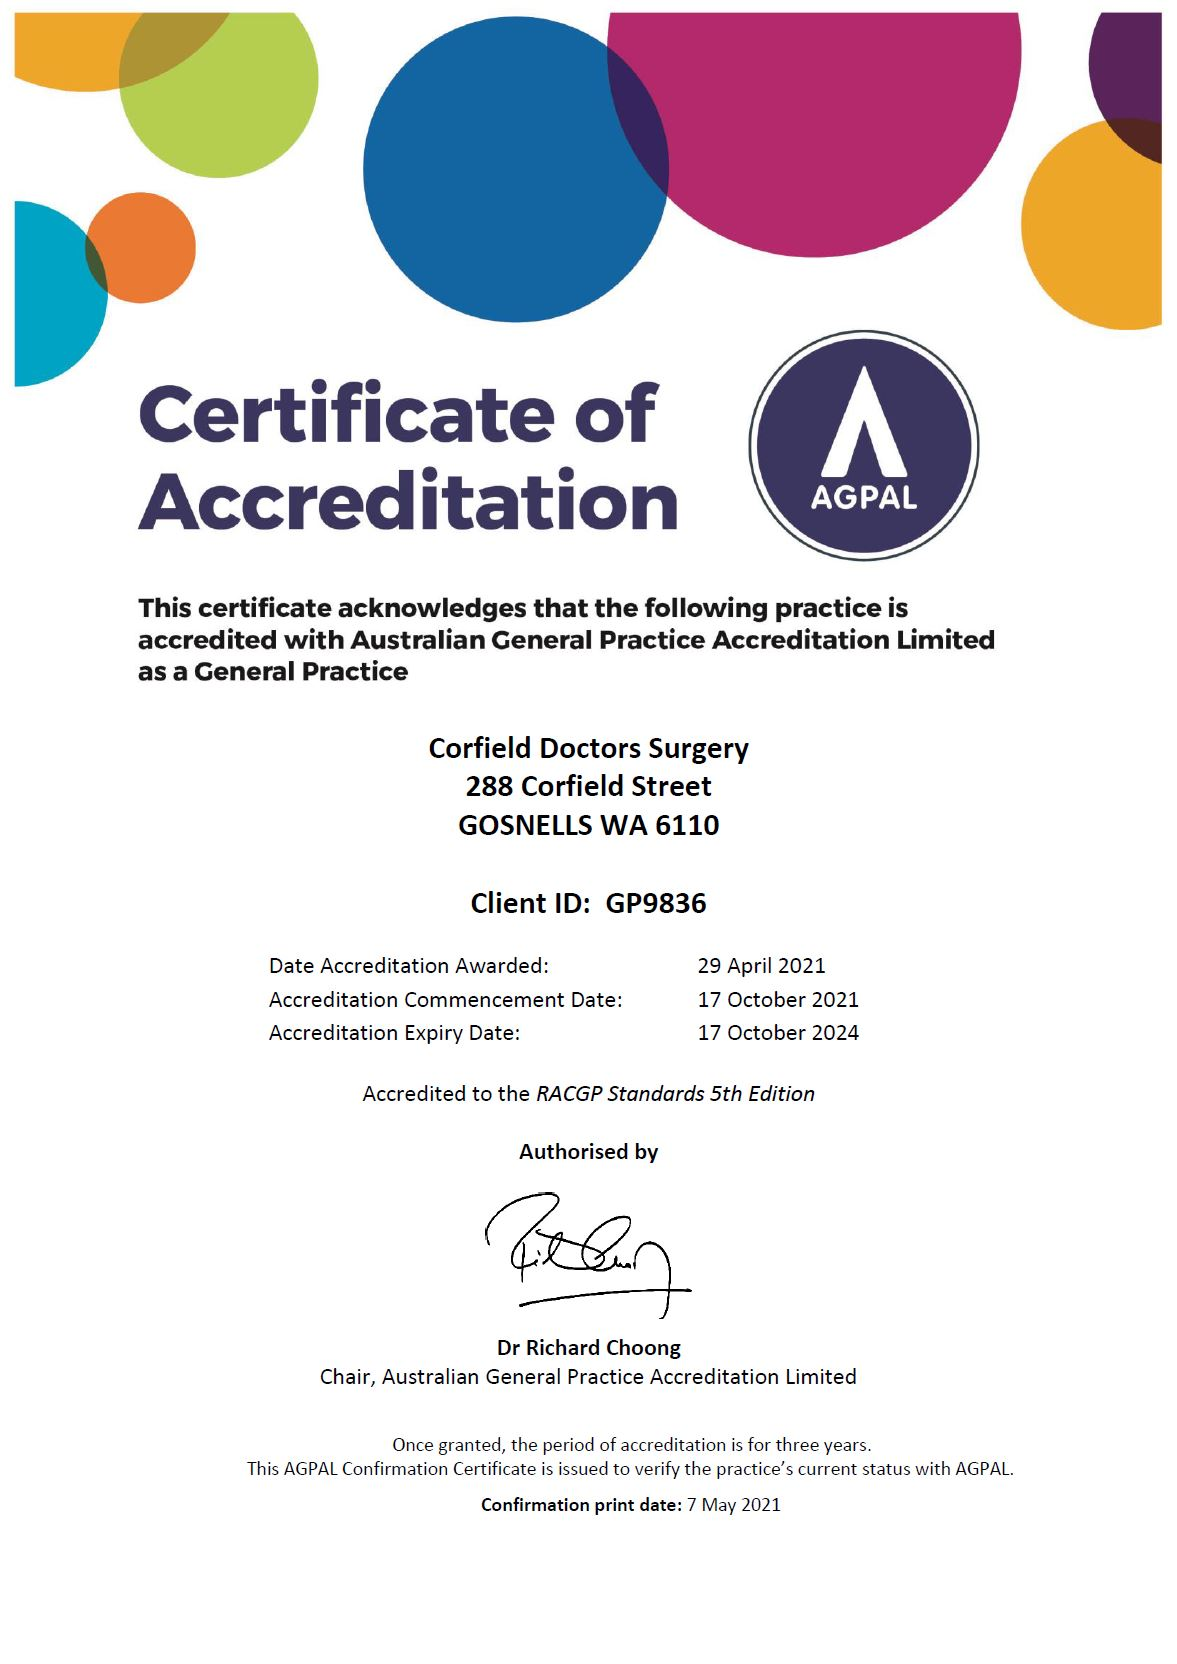 Accreditation Certificate CDS